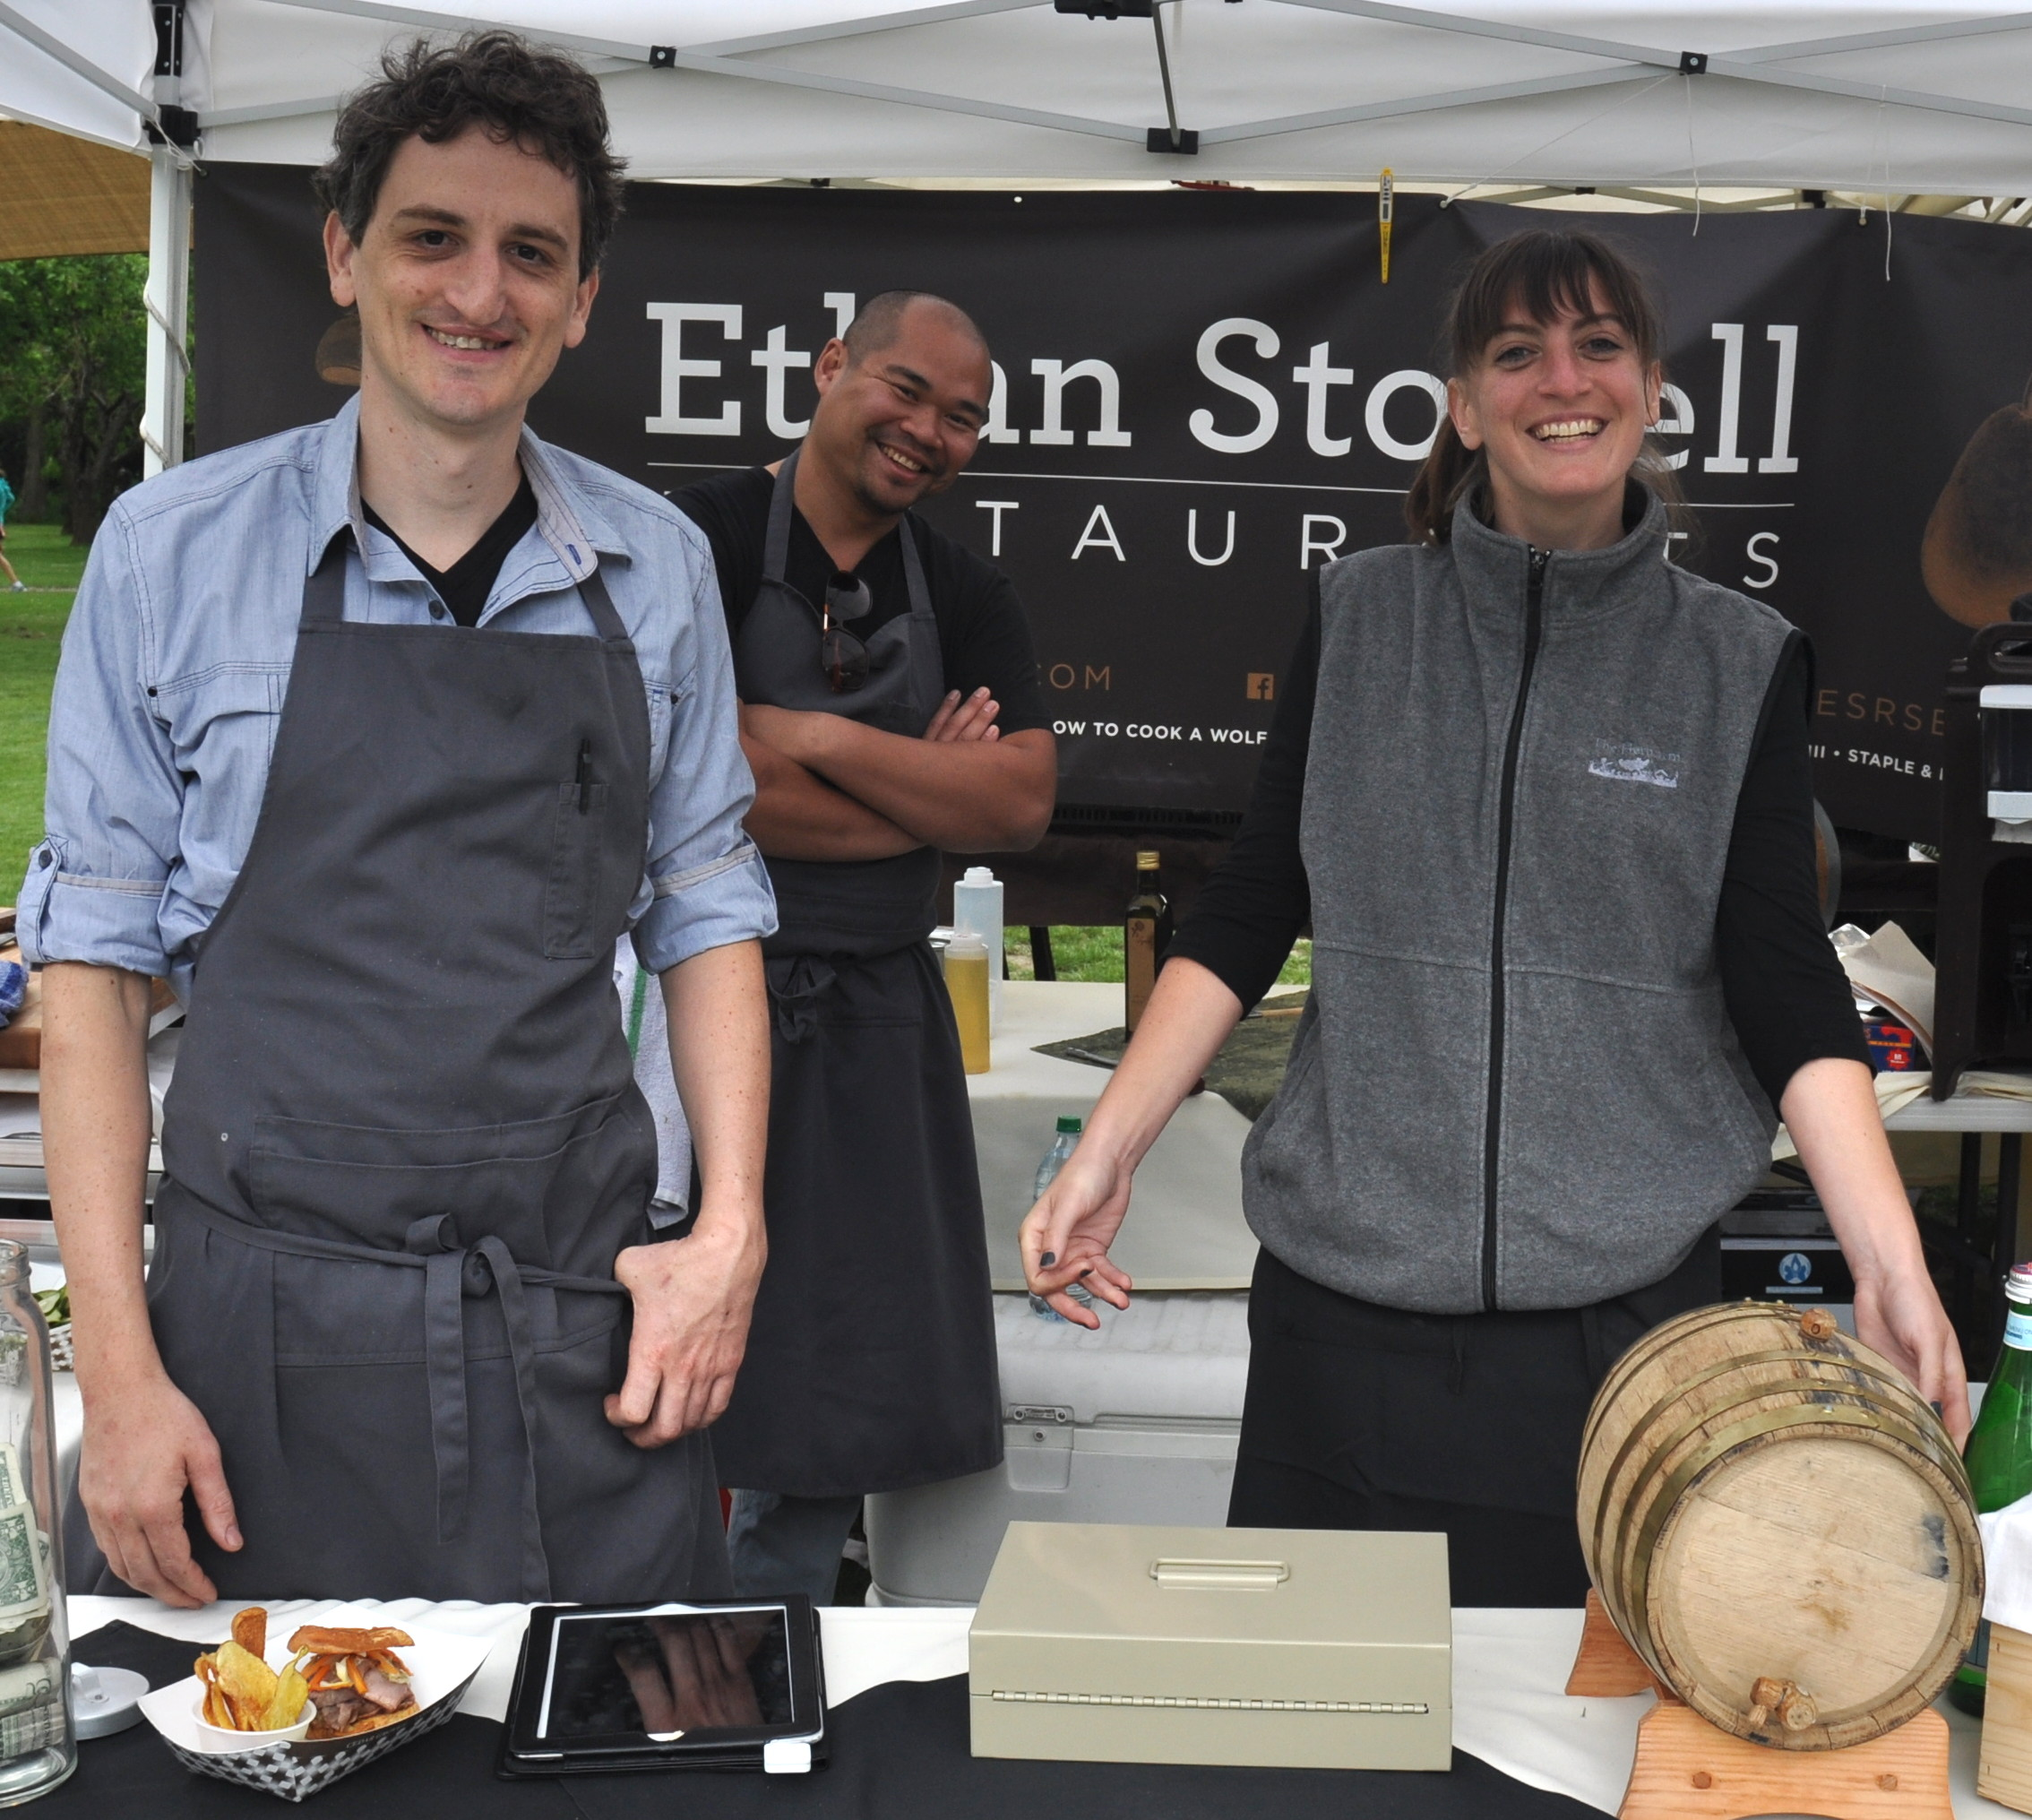 Chef Joe Ritchie and the crew from MKT, Ethan Stowell's new restaurant in Tangletown at Wallingford Farmers Market. Copyright Zachary D. Lyons.